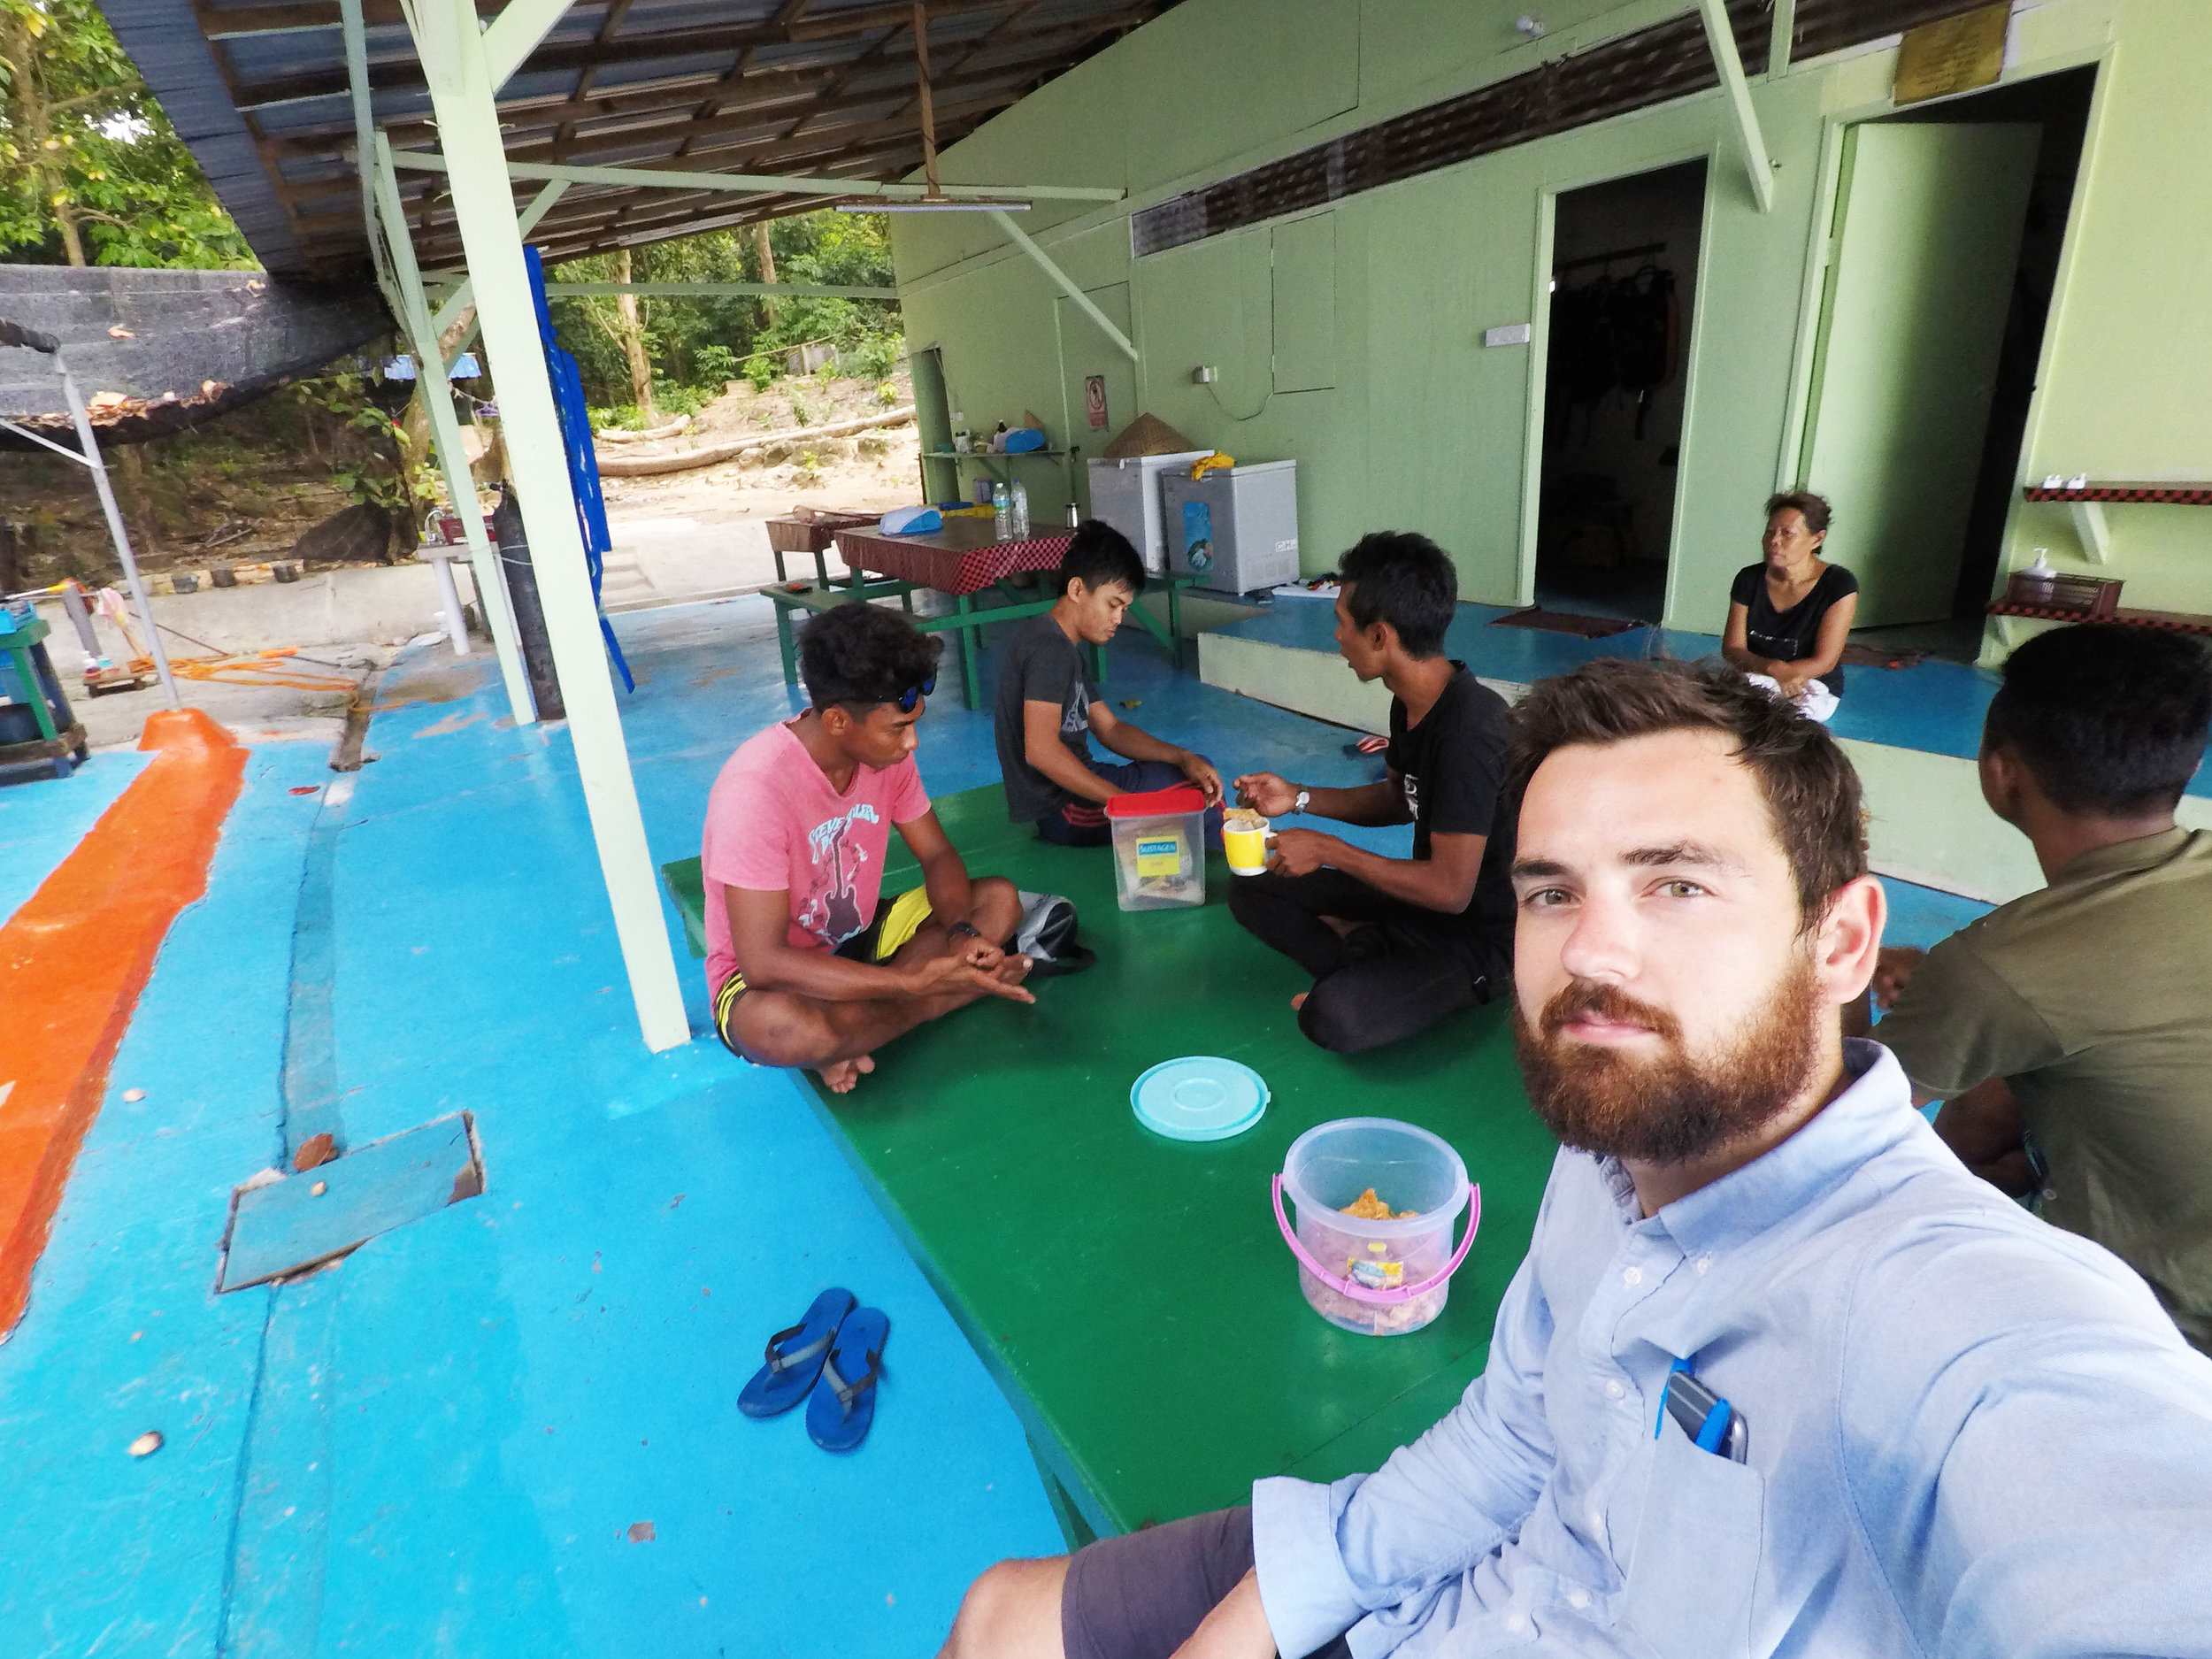 The three marine biologists, my guides and I in the basic shared eating space.